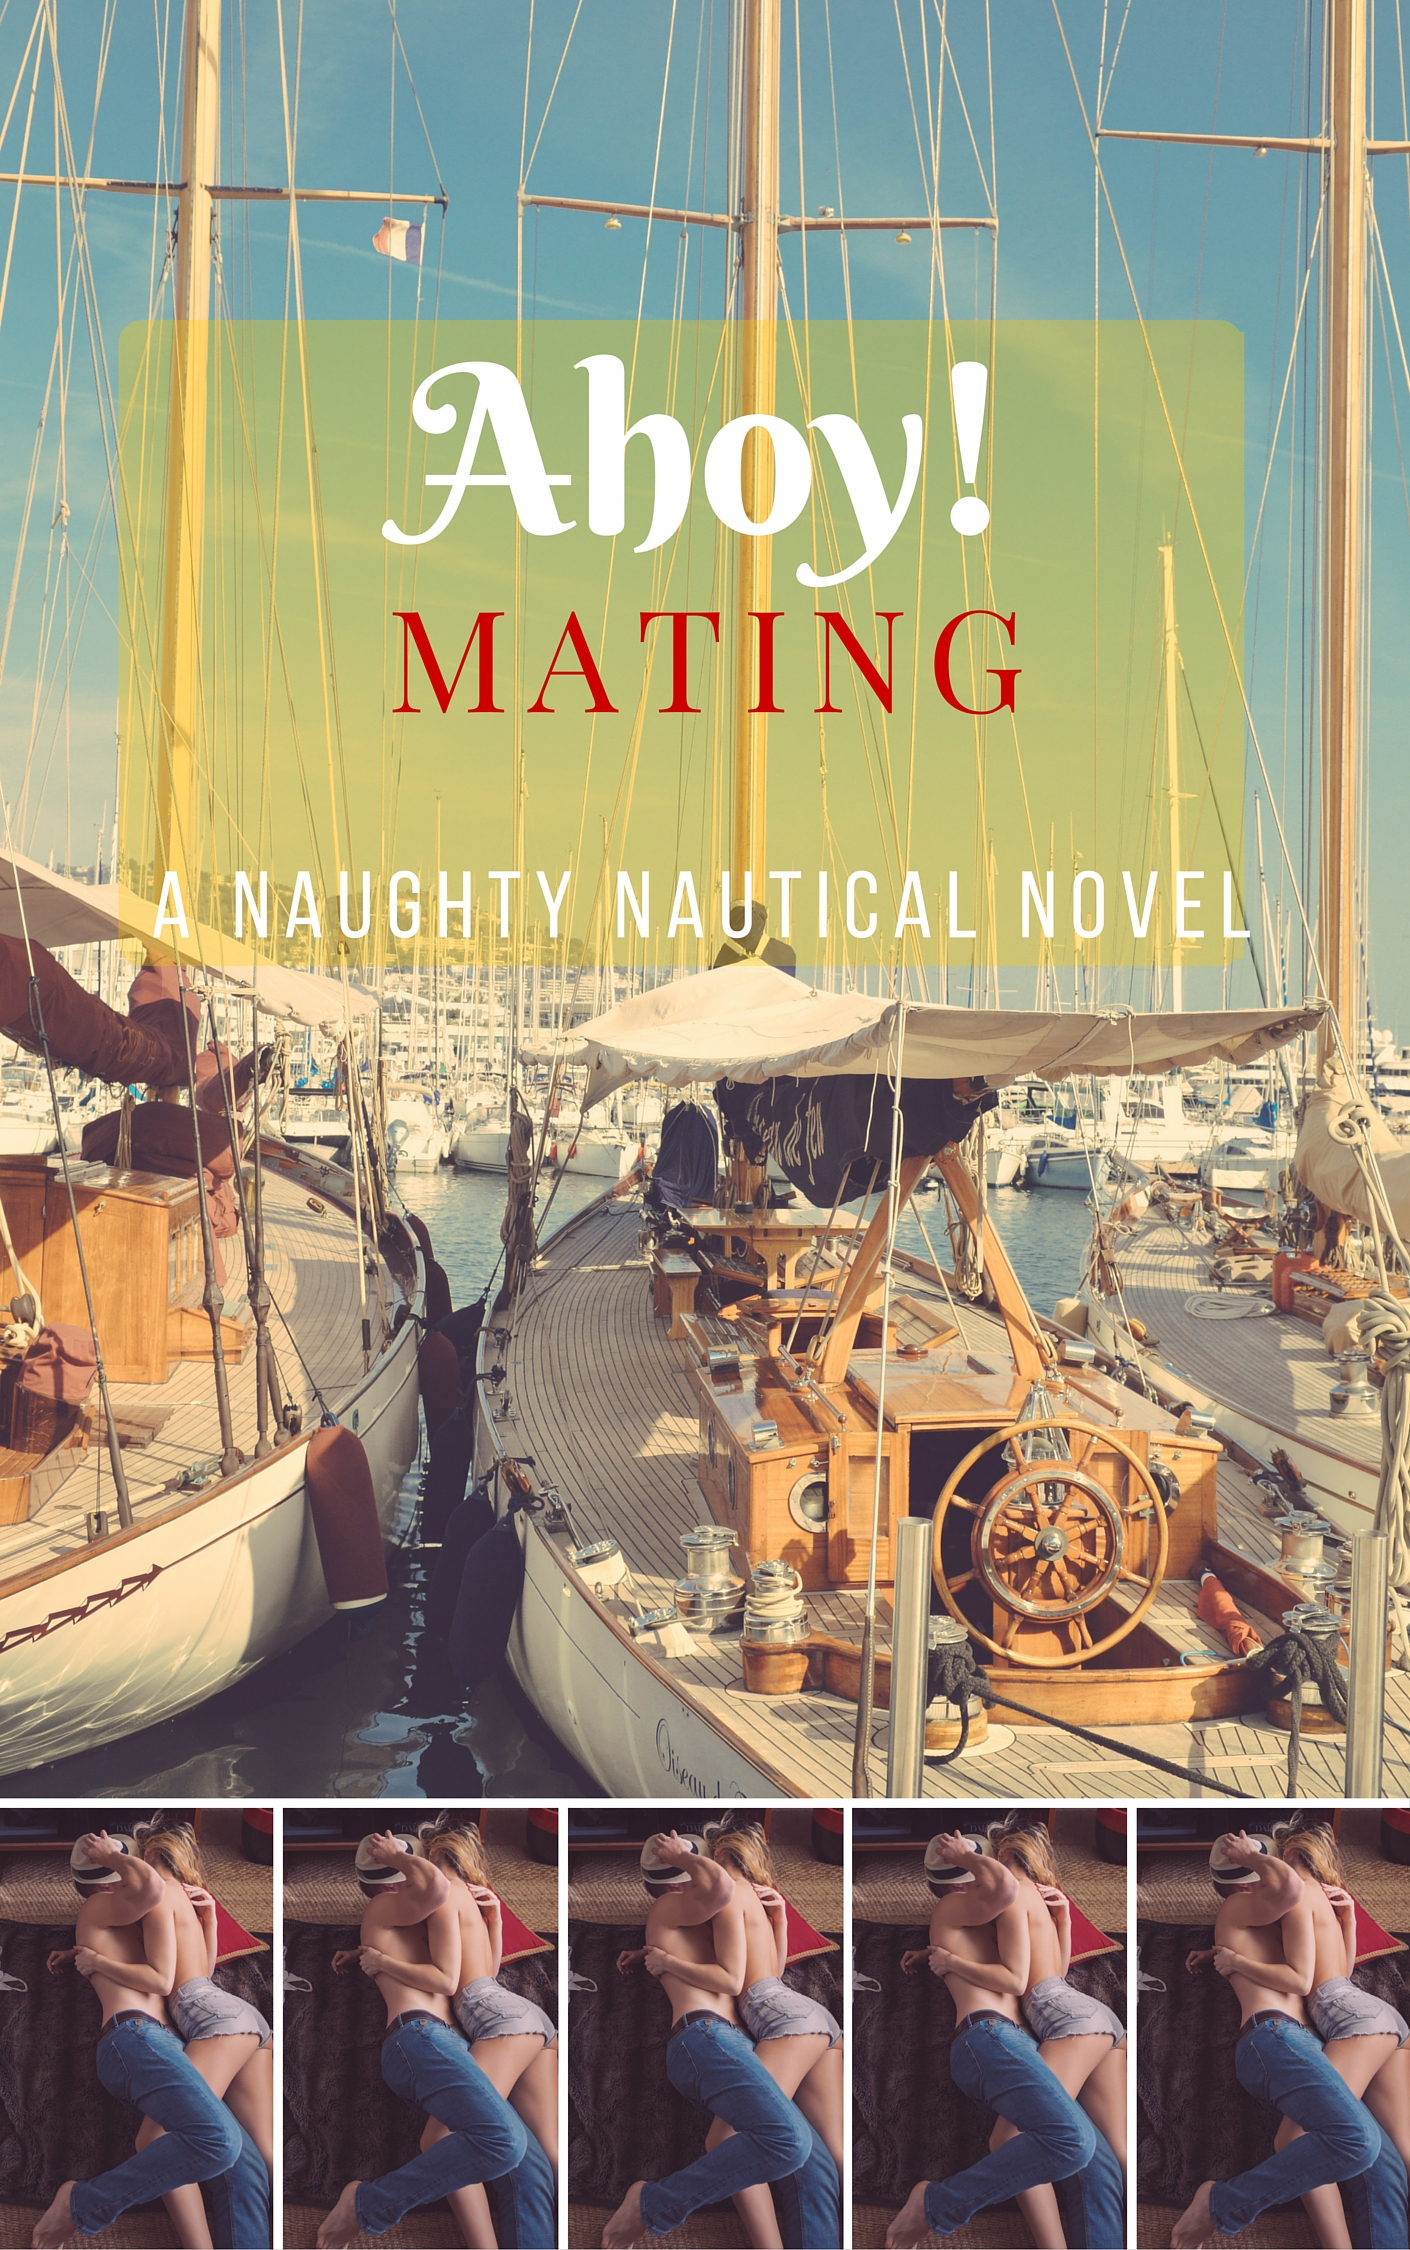 Several images. Above, large: two sailboats, nestled cozily together. Below, repeated several times: a semi-clothed man and woman in a clinch. Title text: Ahoy! Mating, a Naughty Nautical Novel.